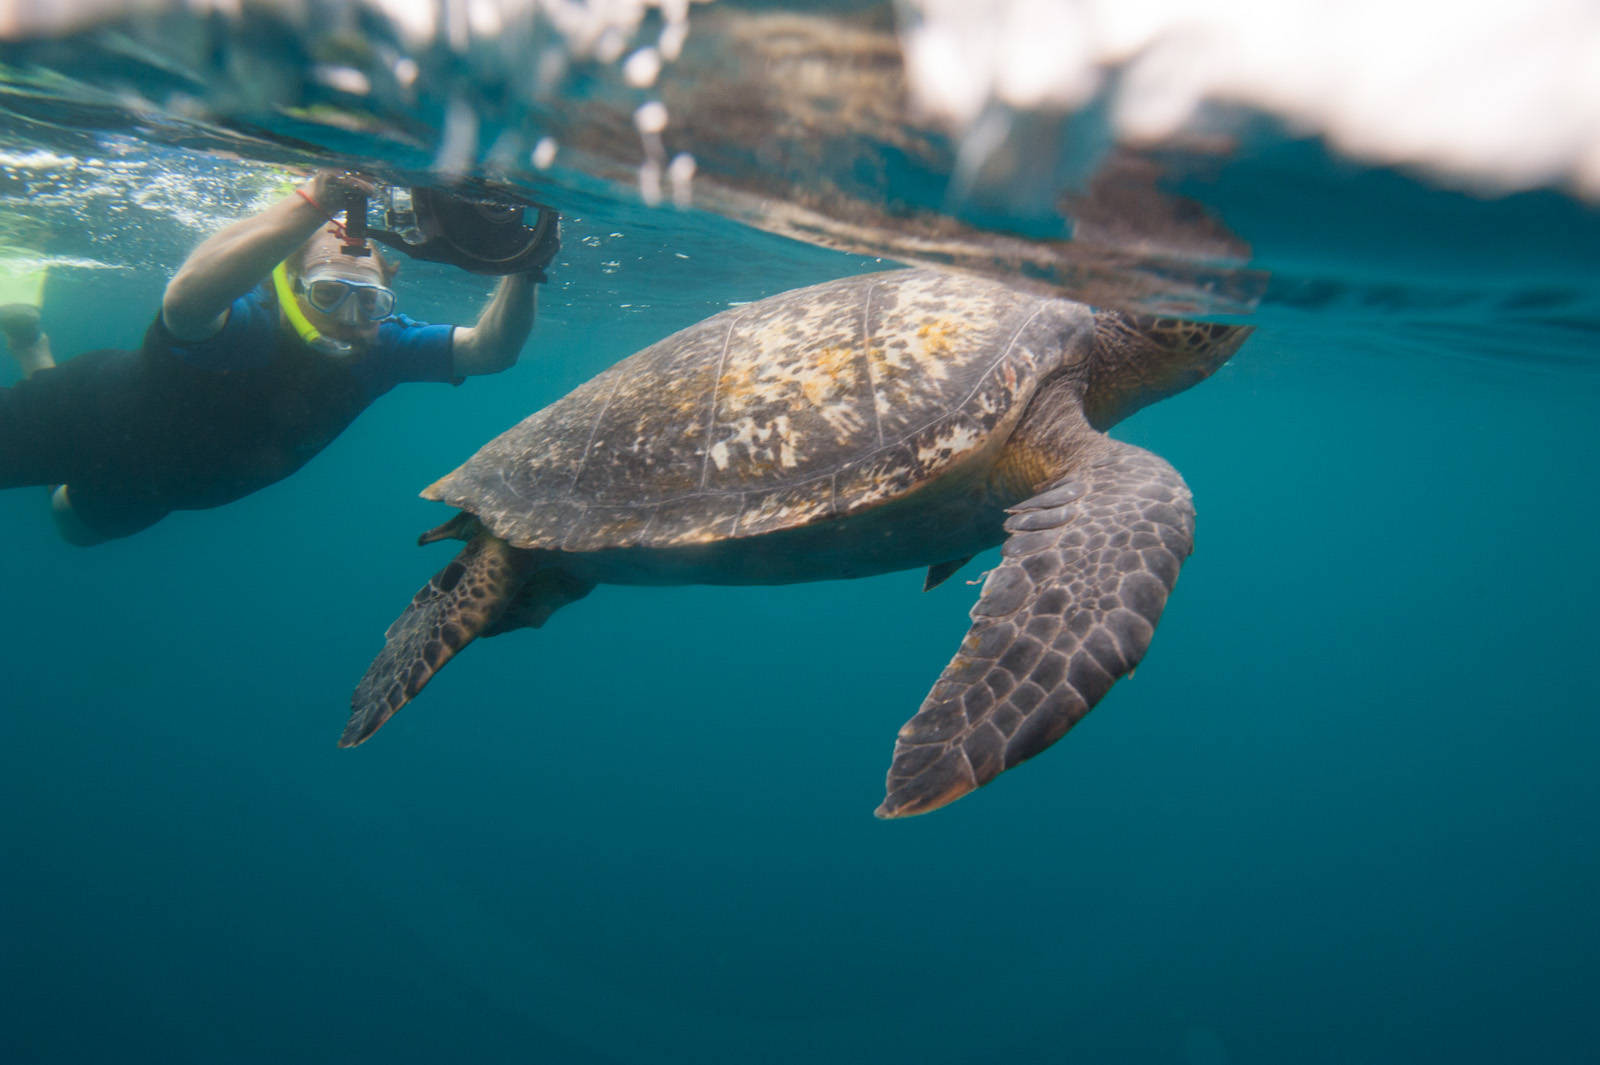 A man shoots an underwater picture of a green sea turtle (Chelonia mydas) around 'Kicker Rocks' on the edge of San Cristobal Island. (IUCN: Endangered; US: Endangered)